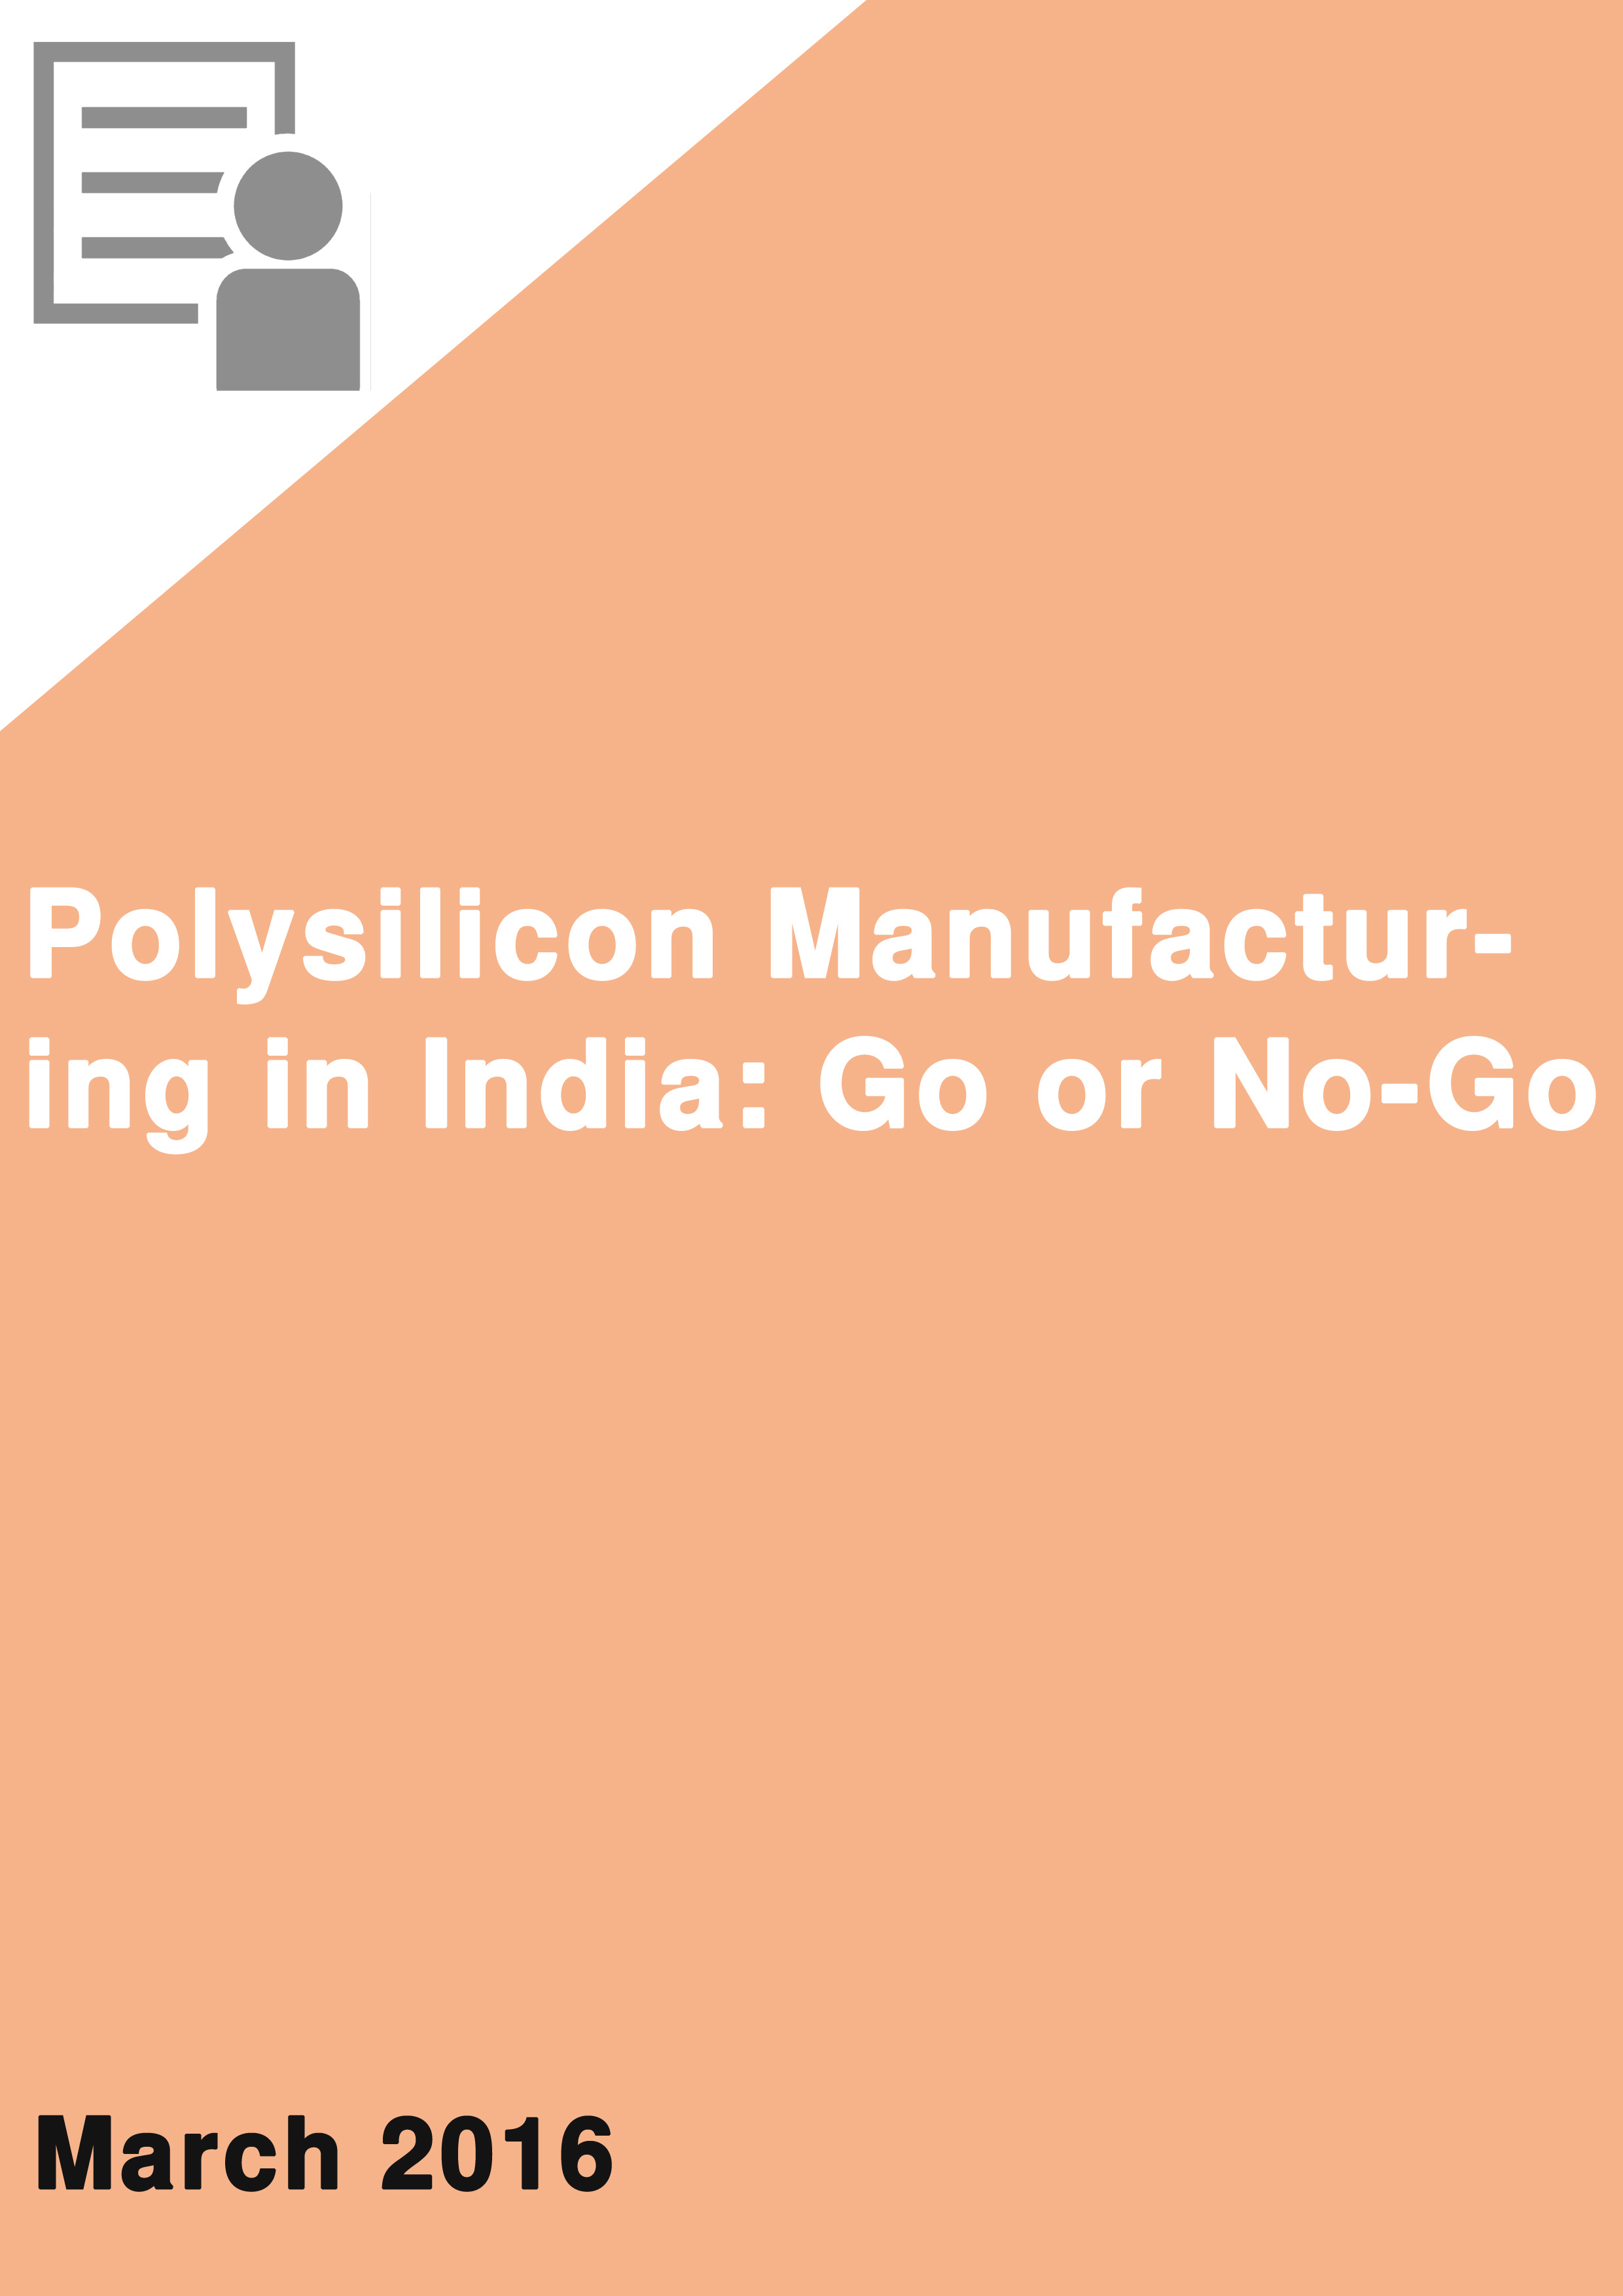 Polysilicon Manufacturing in India: Go or No-Go